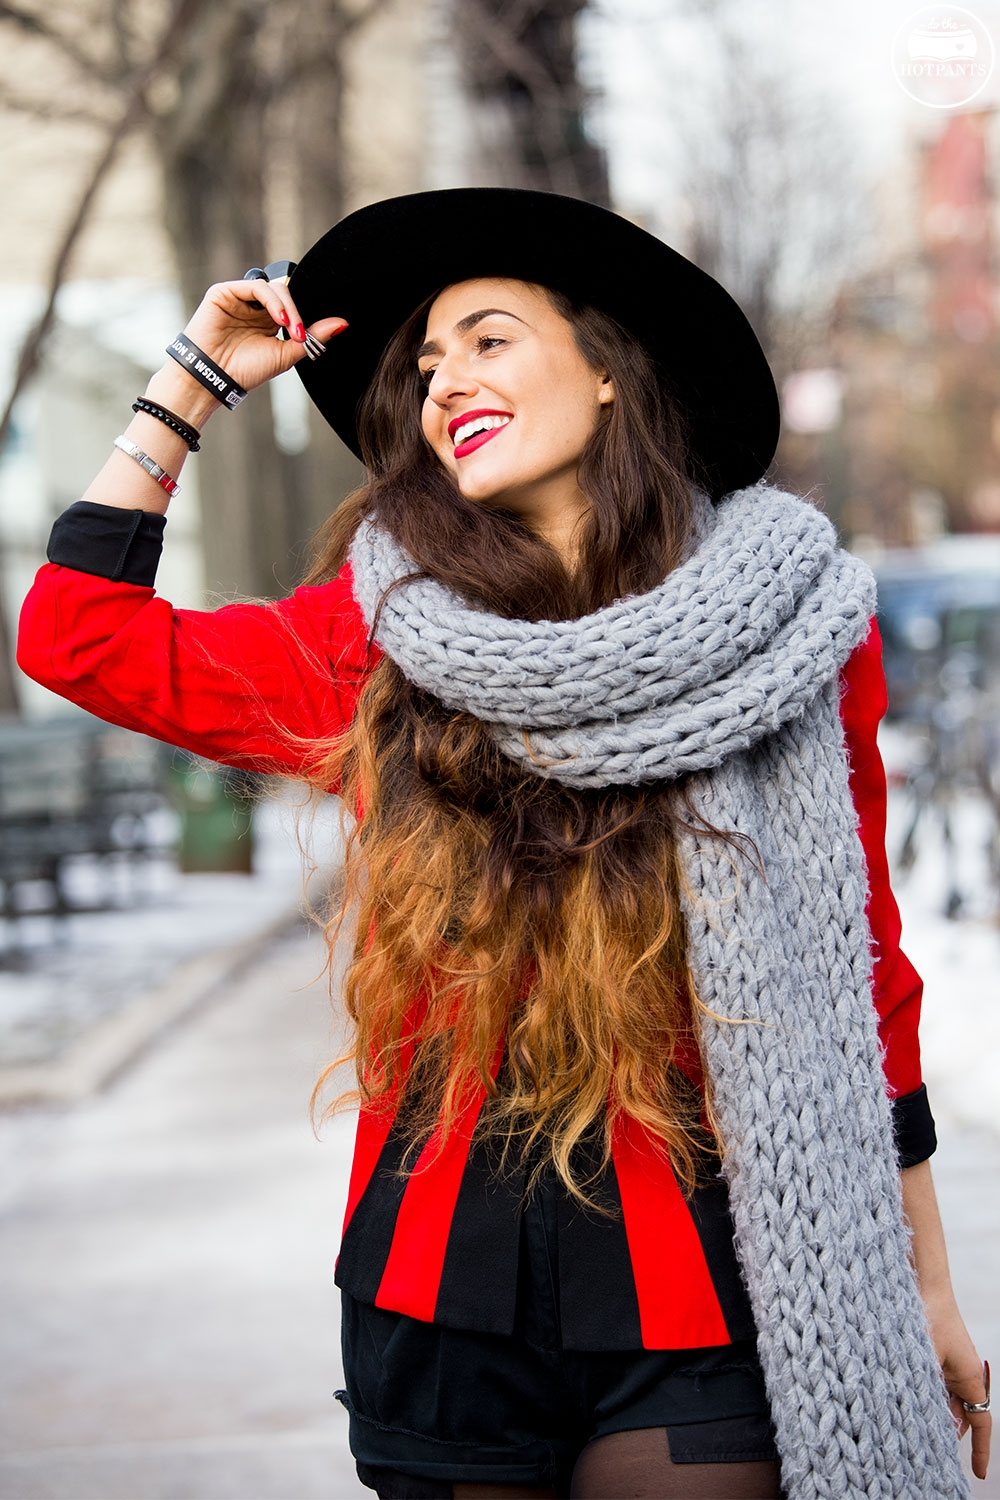 do-the-hotpants-dana-suchow-oversize-scarf-black-wide-brim-hat-nyc-new-york-city-winter-fashion-streetstyle-red-lipstick-blogger_mg_3899.jpg